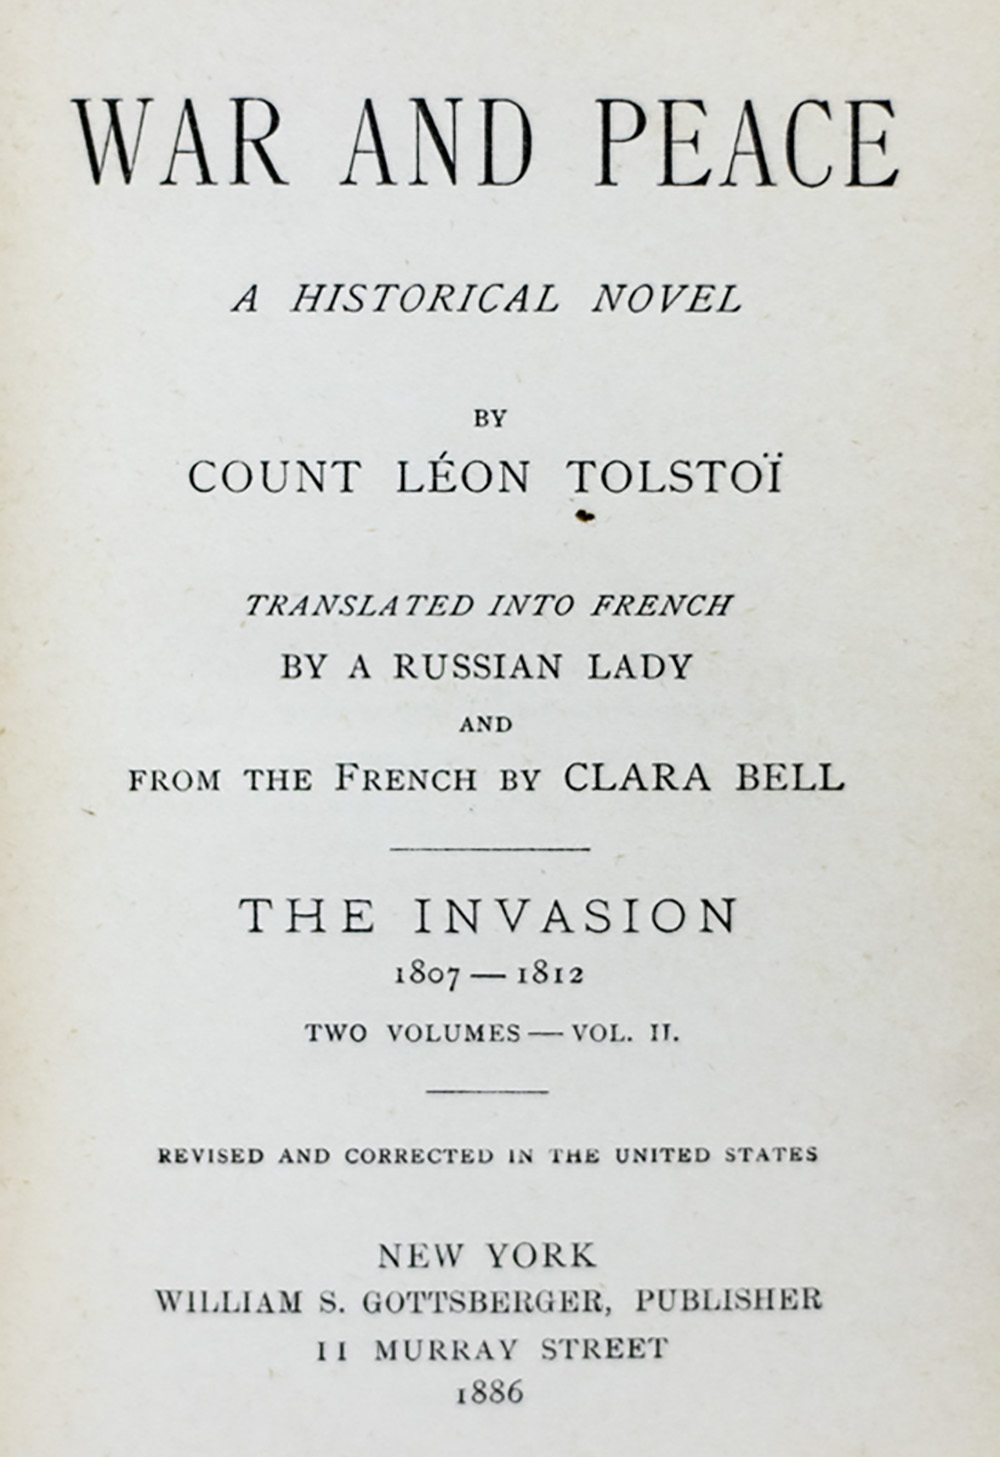 a literary analysis of the book war and peace by leo tolstoy Leo tolstoy (author) literary analysis and criticism novels literature why in  the novel 'war and peace' does the writer leo tolstoy repeats the same ideas.